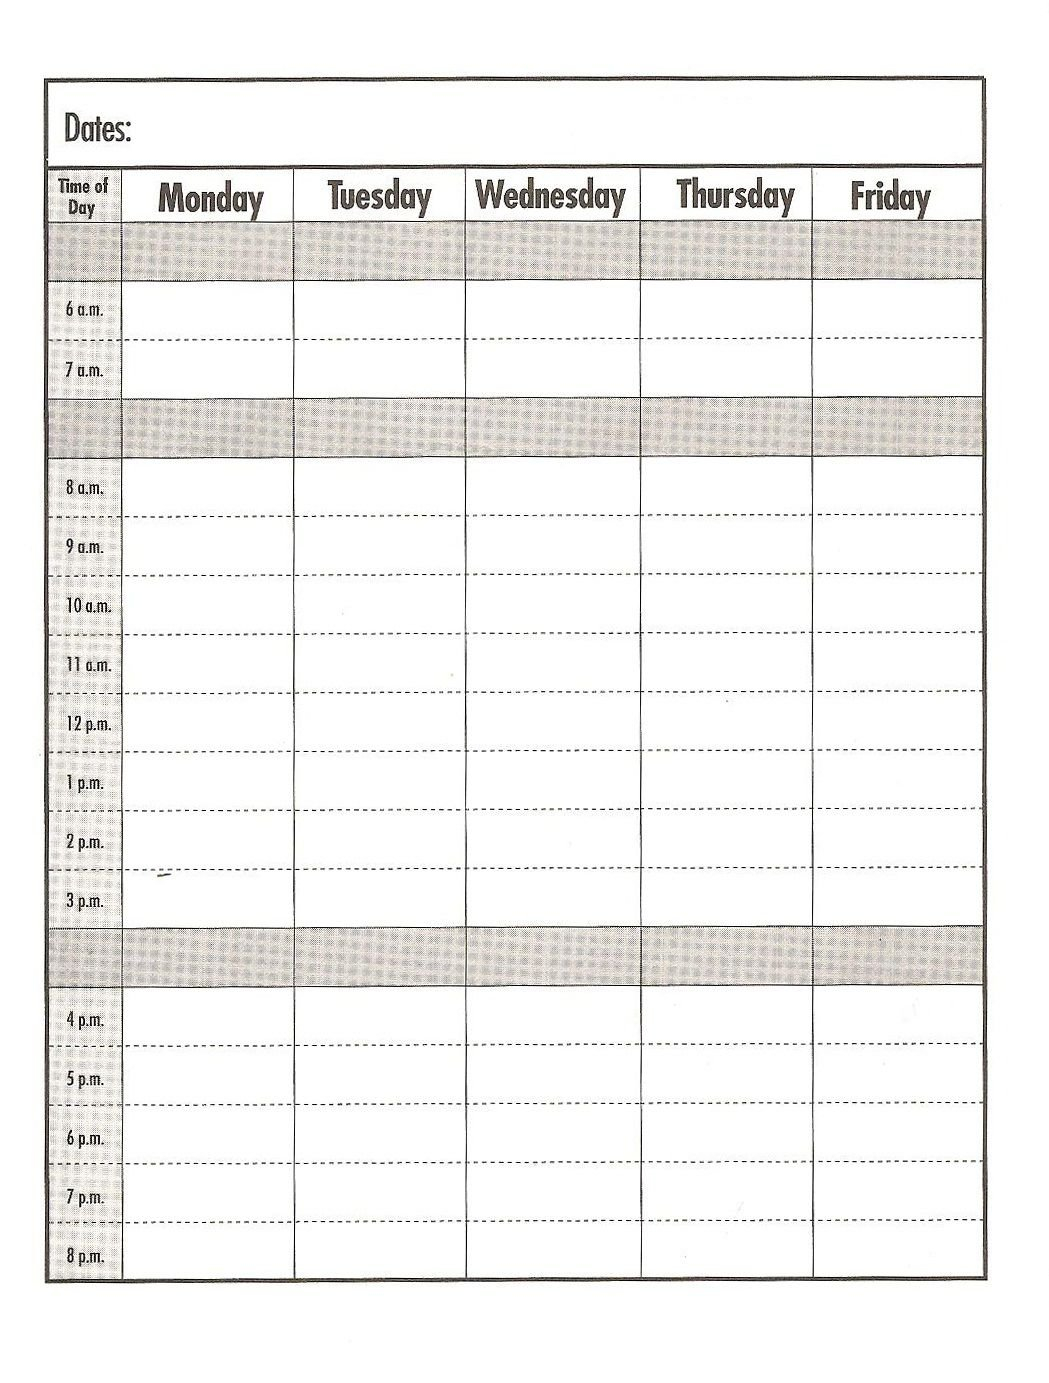 Weekday #Schedule Template/Print Out #Education #School Free Printable Weekly School Schedule With Time Slots